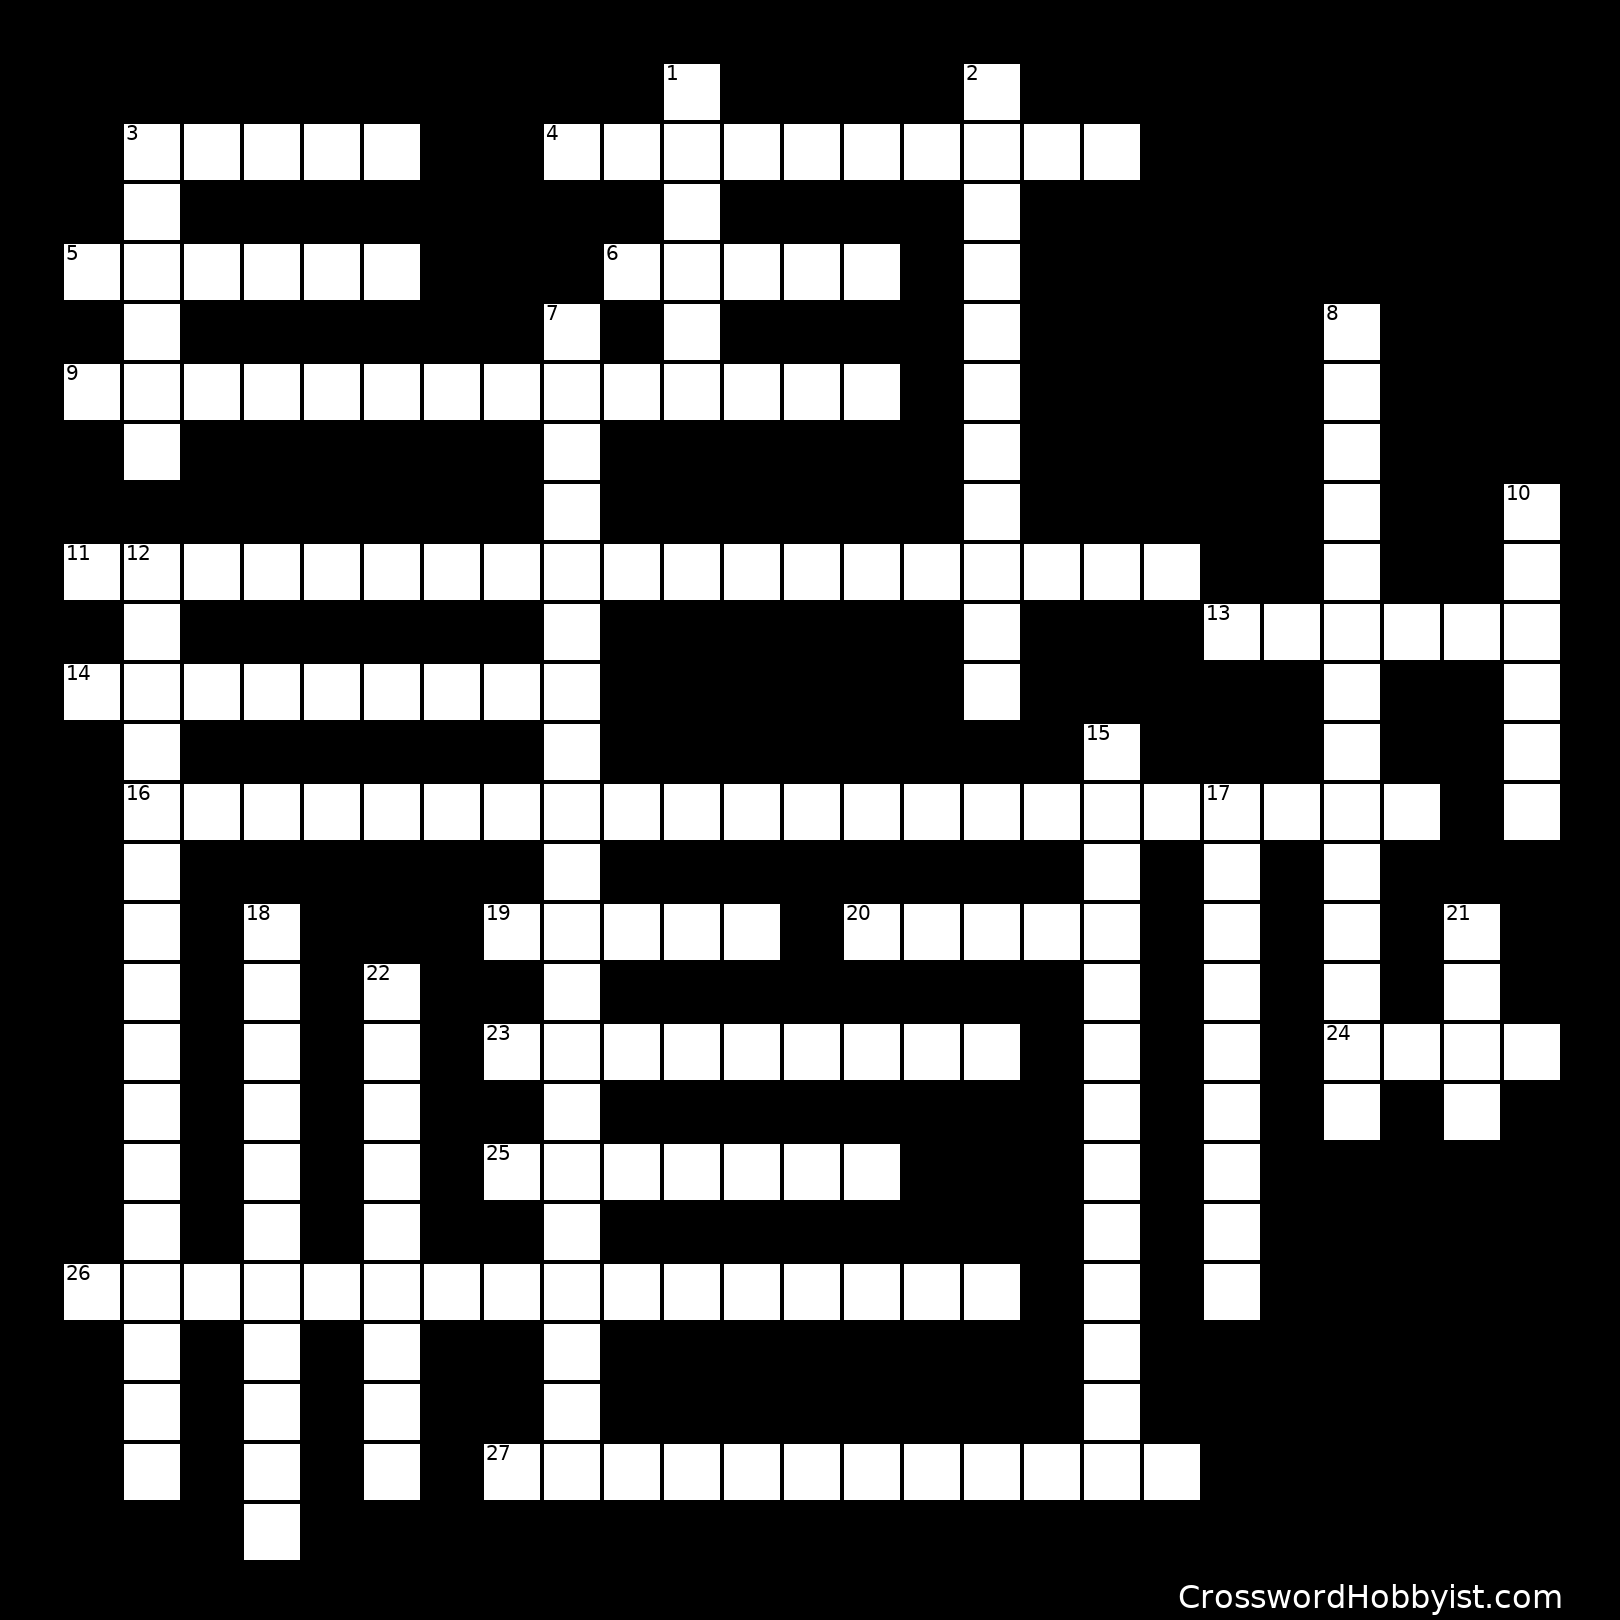 Cardiac Crossword